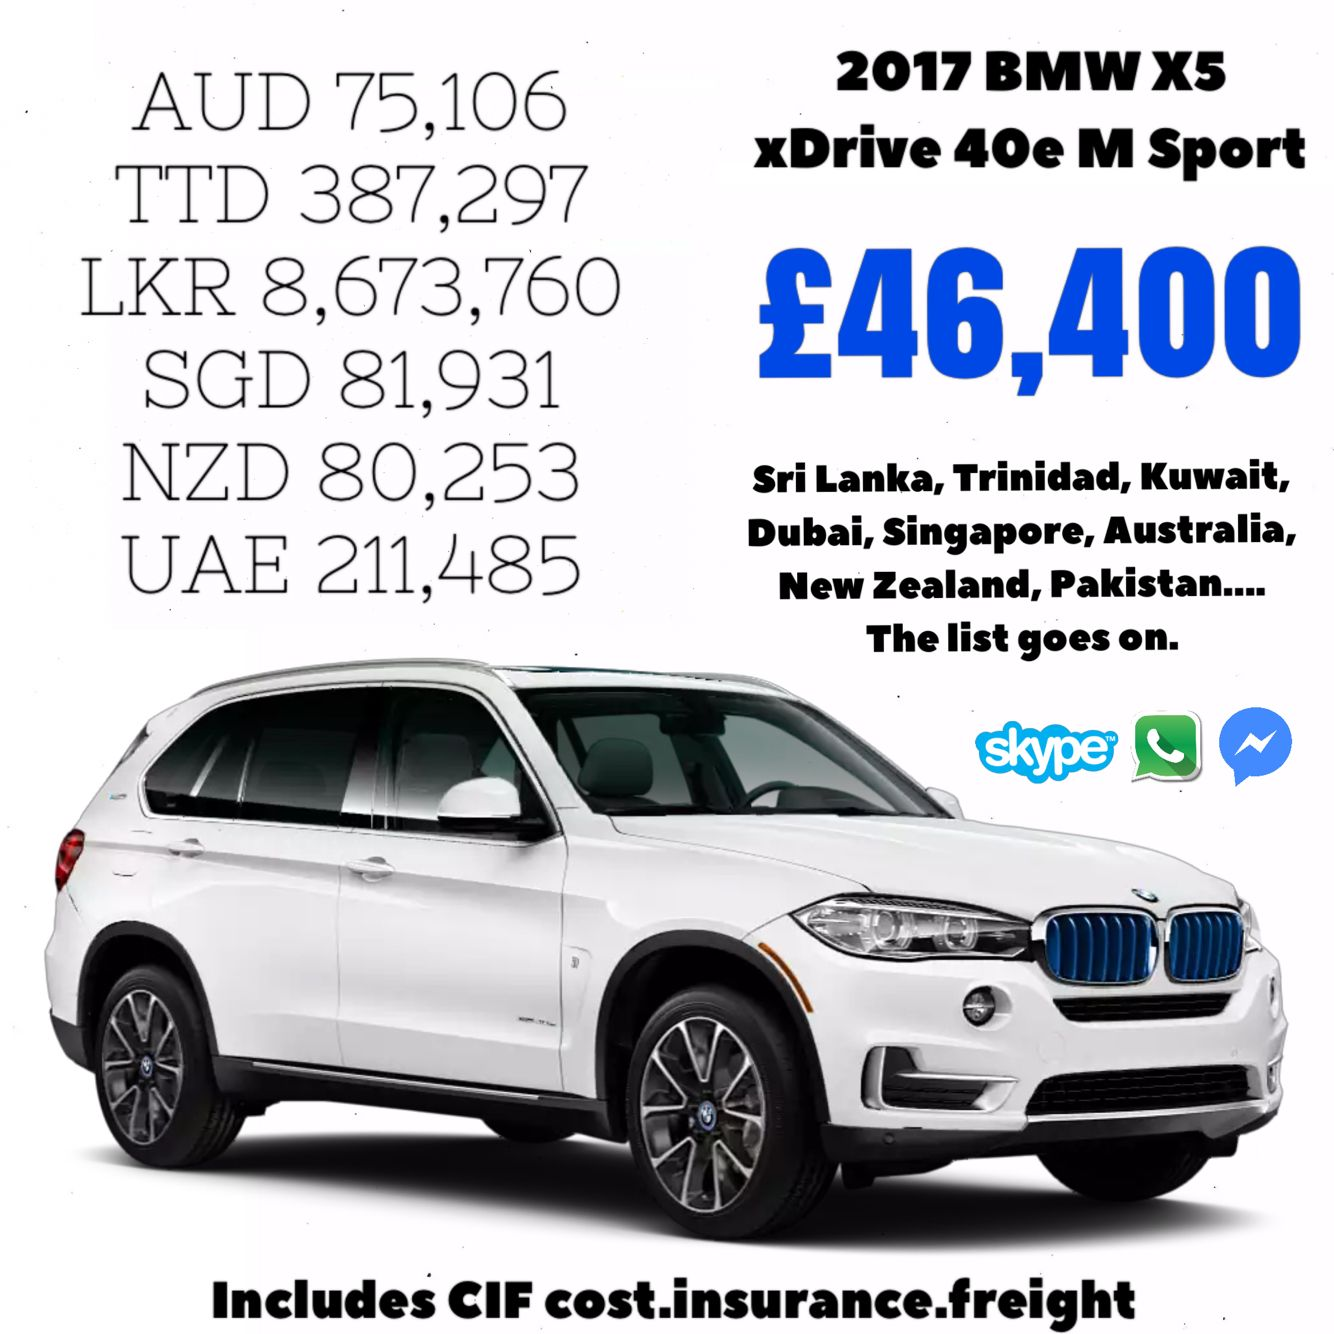 Contact us today for unbelievable prices cif bmwx5